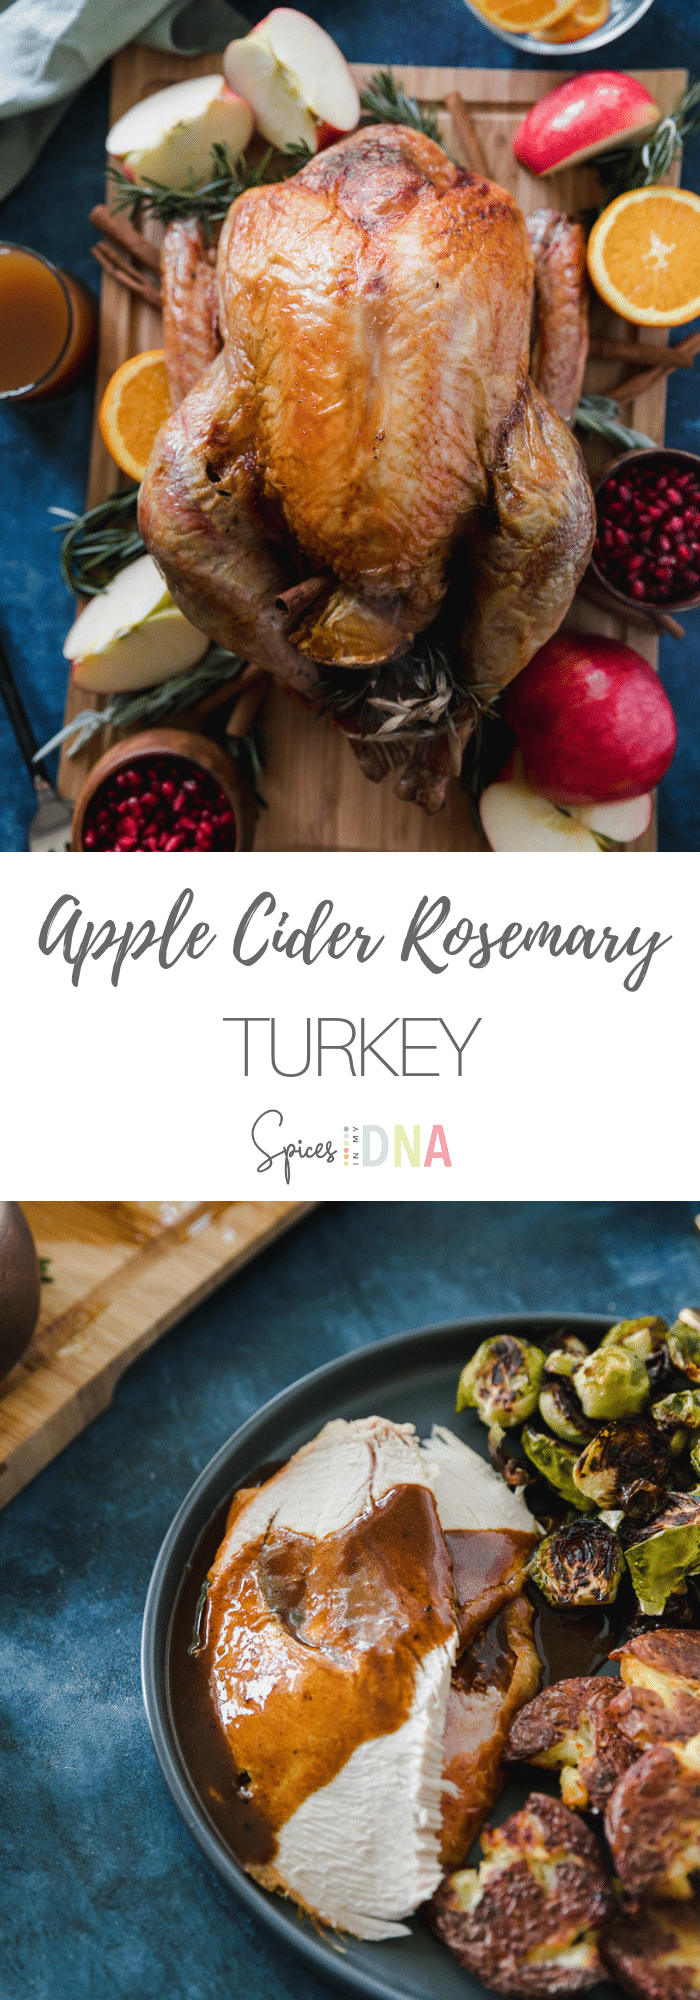 This Apple Cider Rosemary Turkey is filled with oranges, honeycrisp apples, rosemary, fresh sage, and a cinnamon stick, and it's cooked with apple cider in the roasting pan for extra fall flavor! The turkey is finished with an orange rosemary gravy, and it's a perfect addition to your Thanksgiving or holiday table! #turkey #Thanksgiving #holidayrecipe